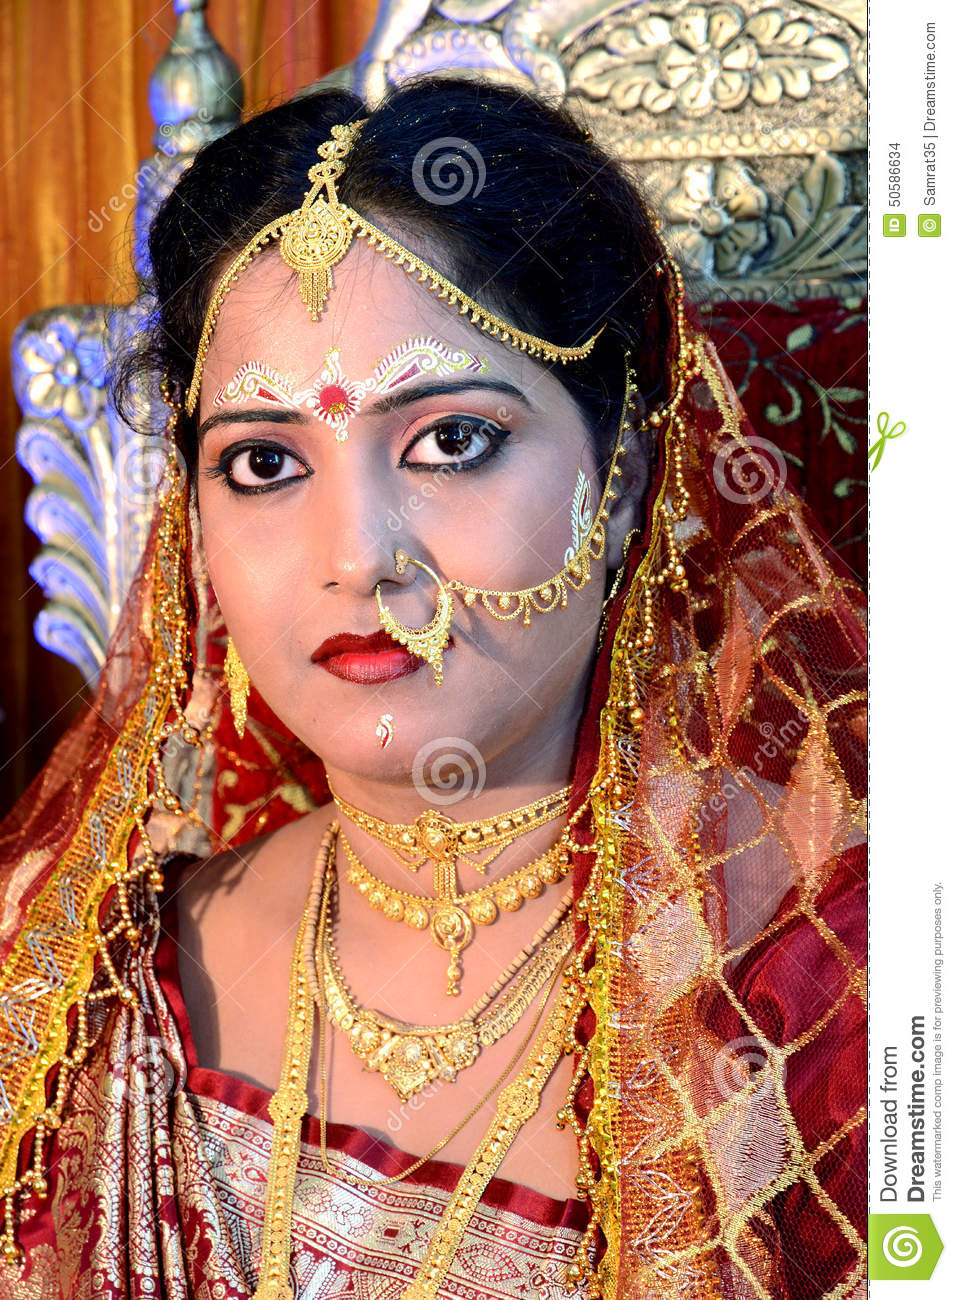 Looking for bengali girl for marriage